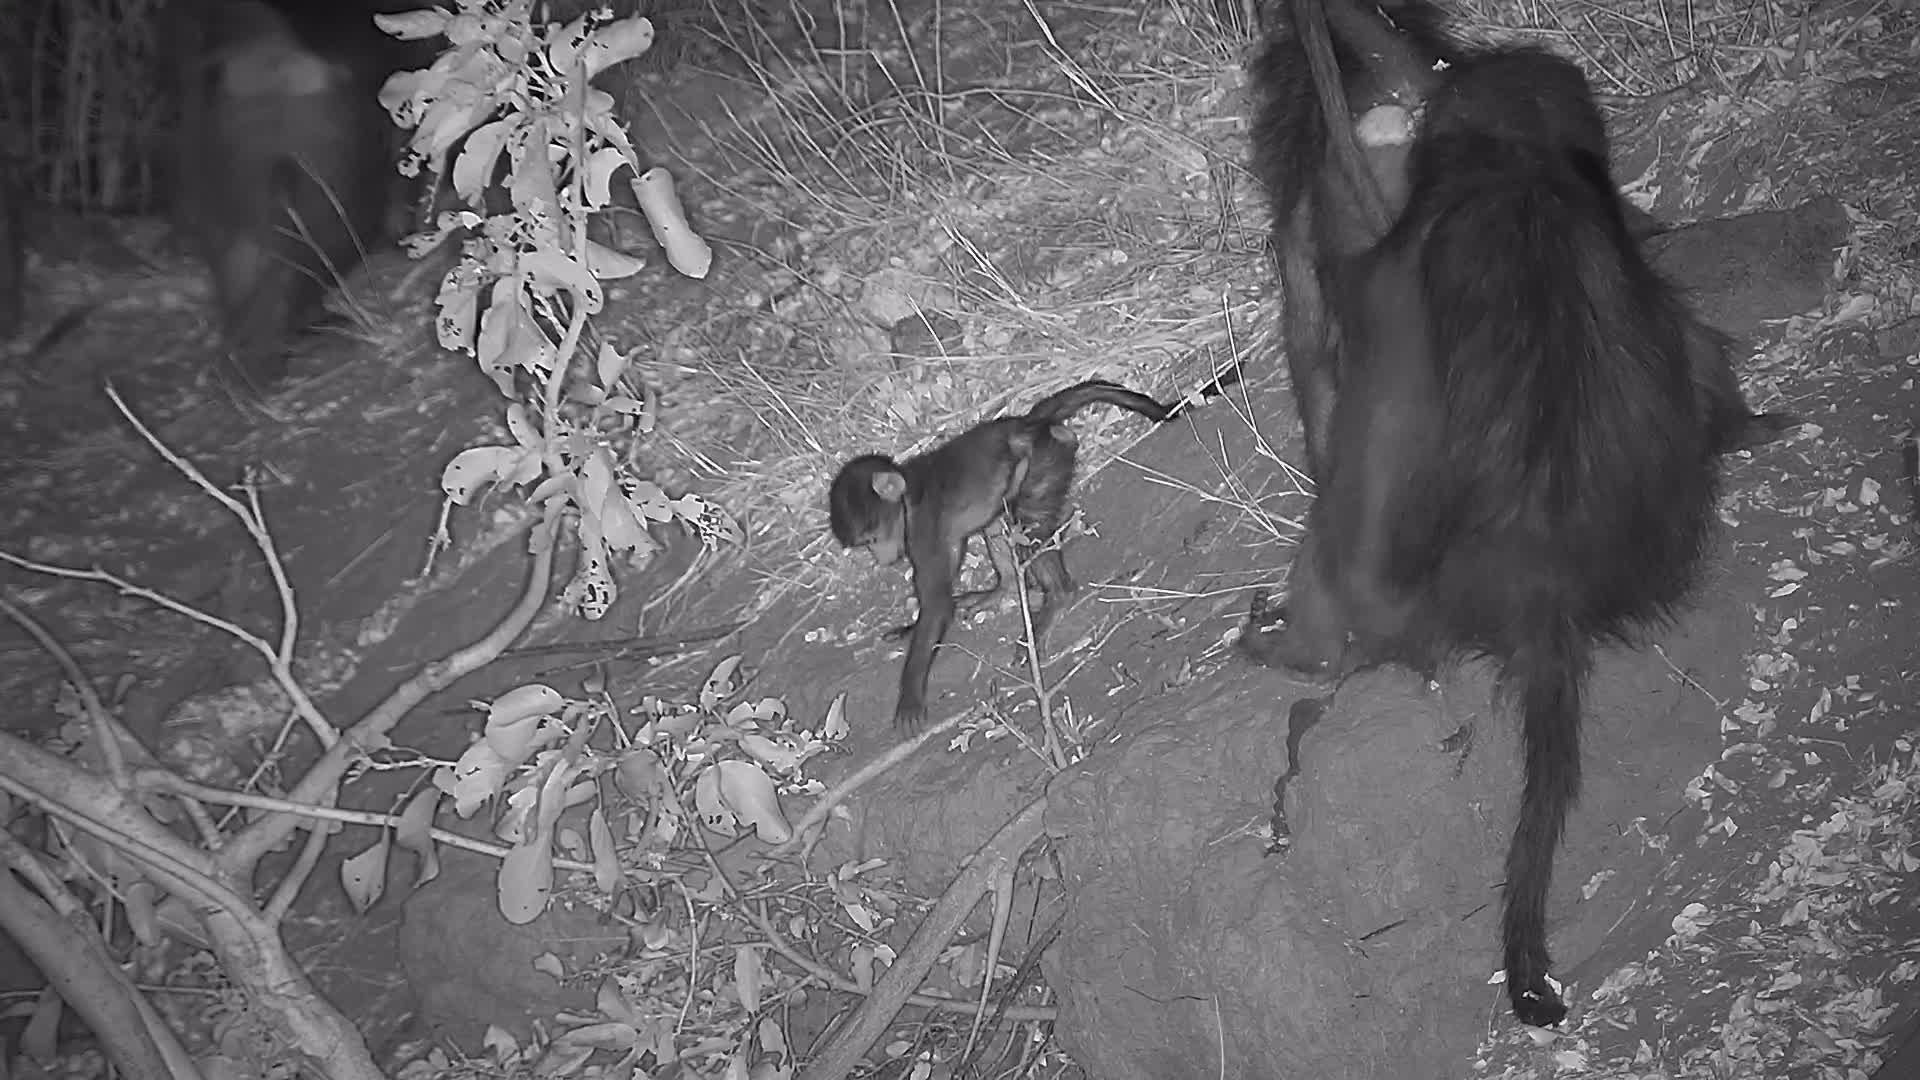 VIDEO: Baboons resting and the Babies playing